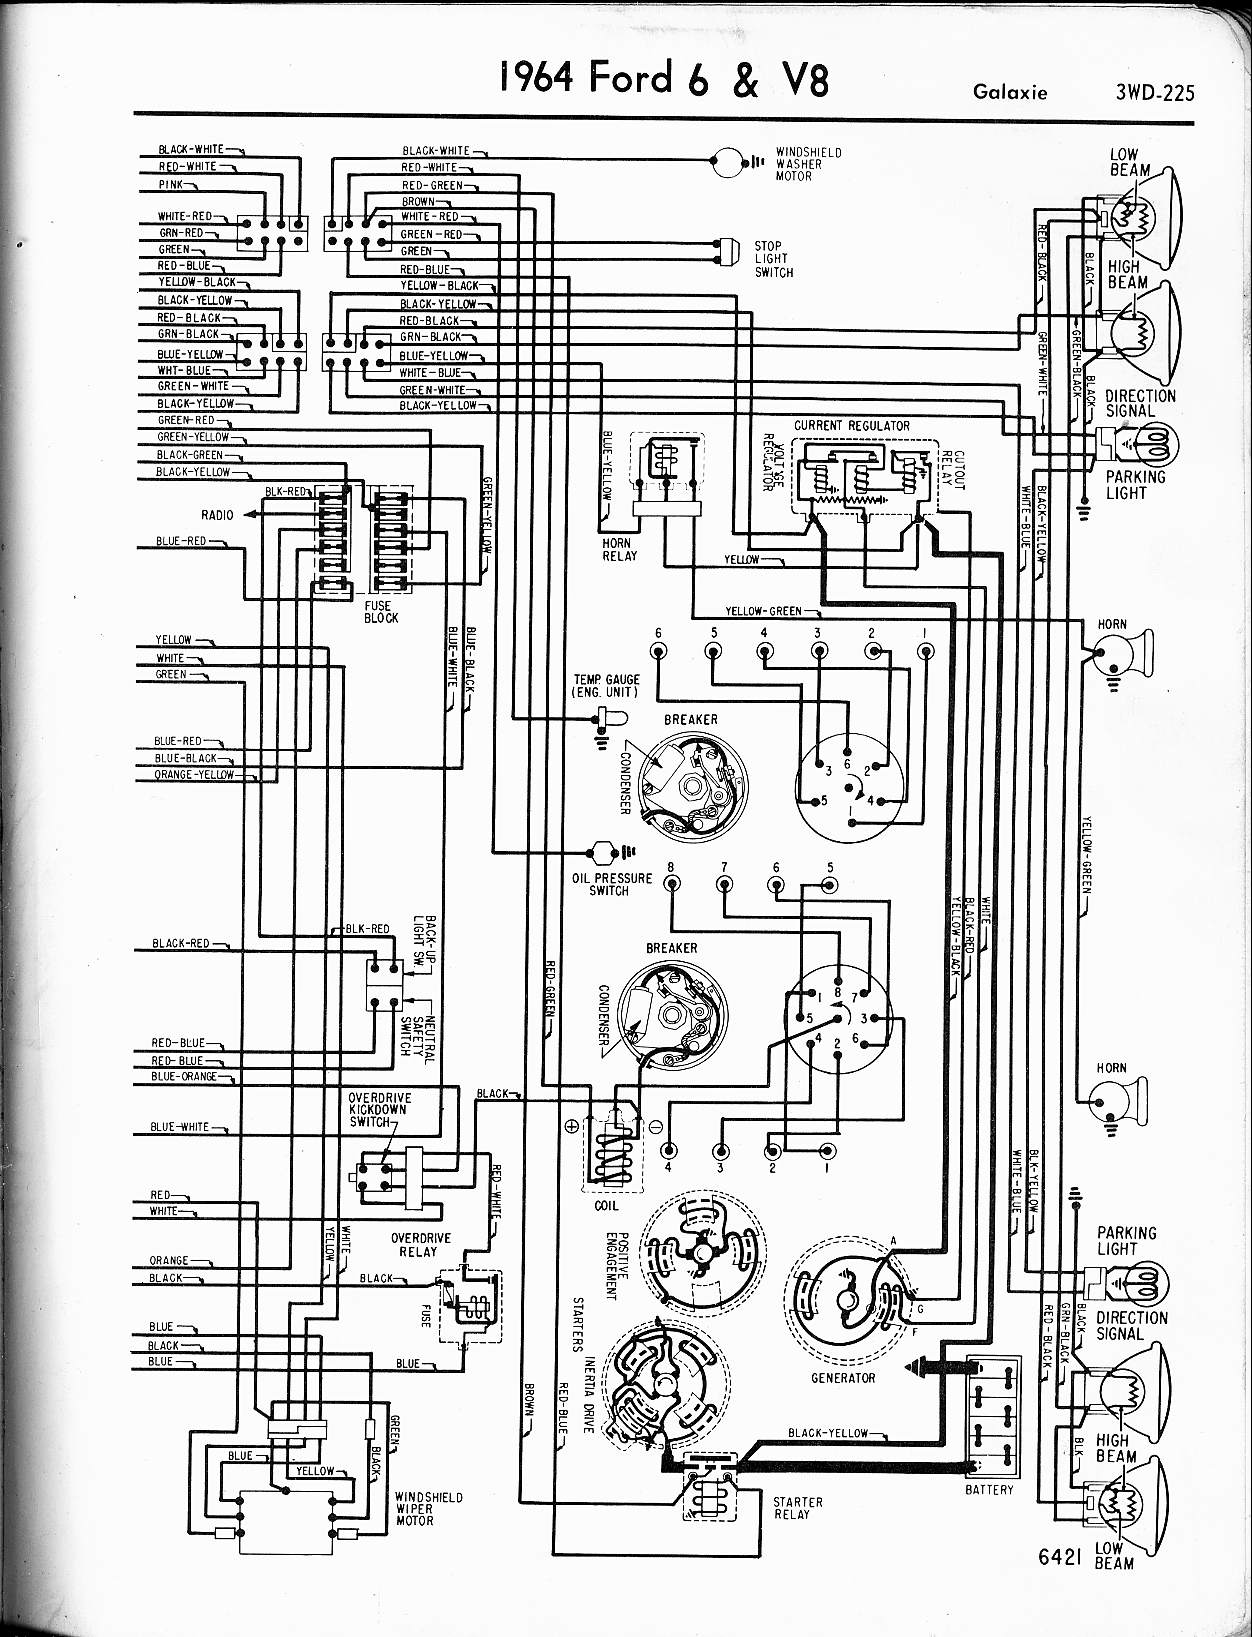 1964 Ford Galaxie 500 Wiring Diagram Reinvent Your 1969 57 65 Diagrams Rh Oldcarmanualproject Com Fairlane